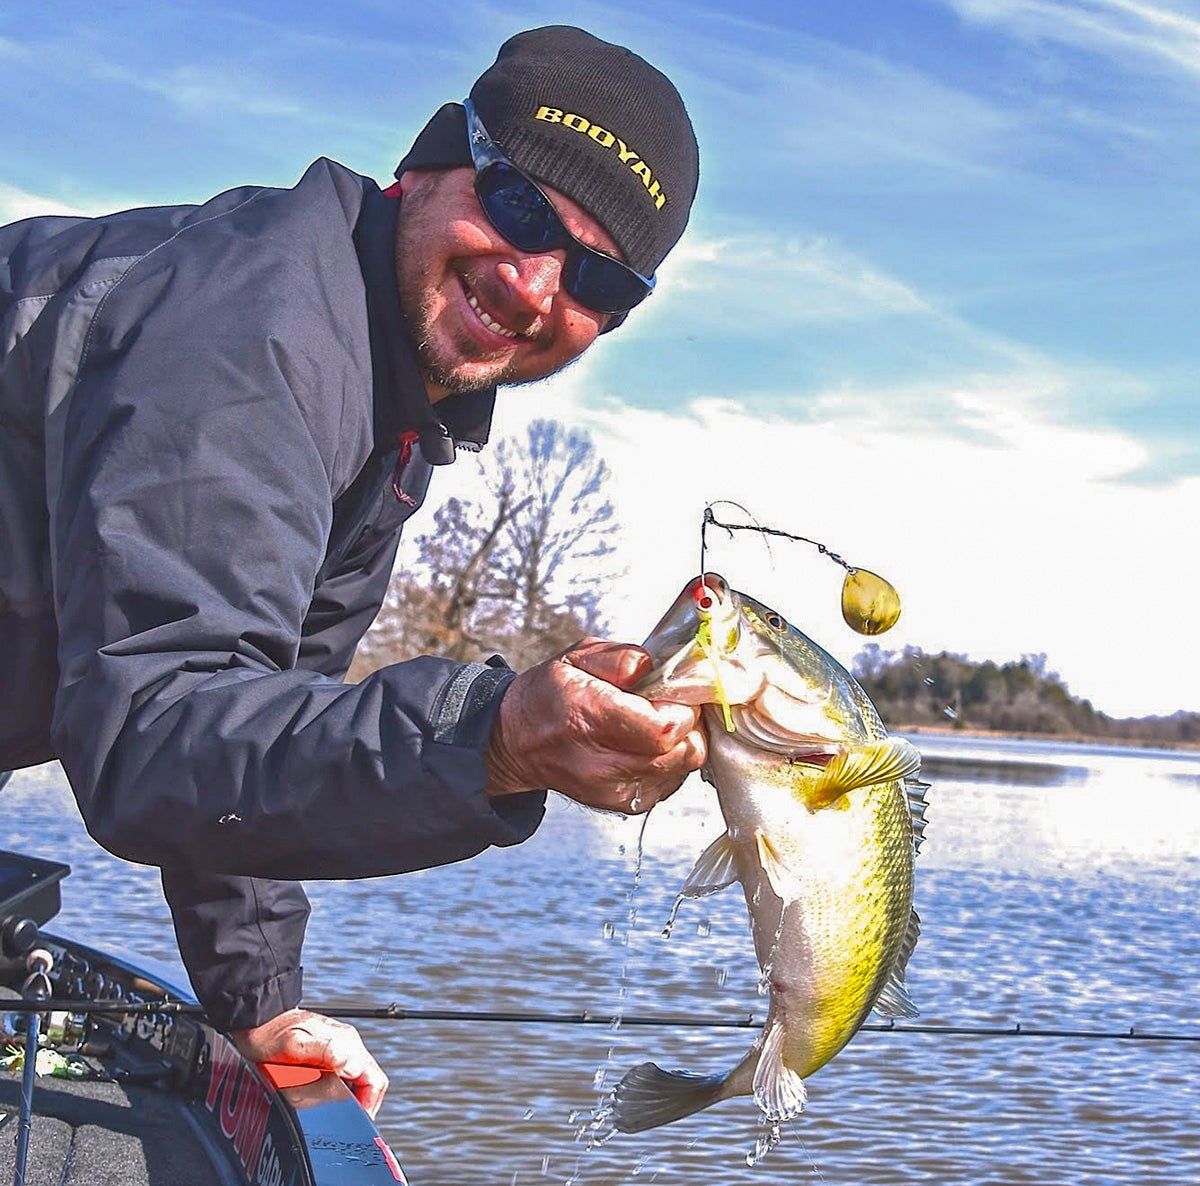 How to Find Bass in High Dirty Cold Water